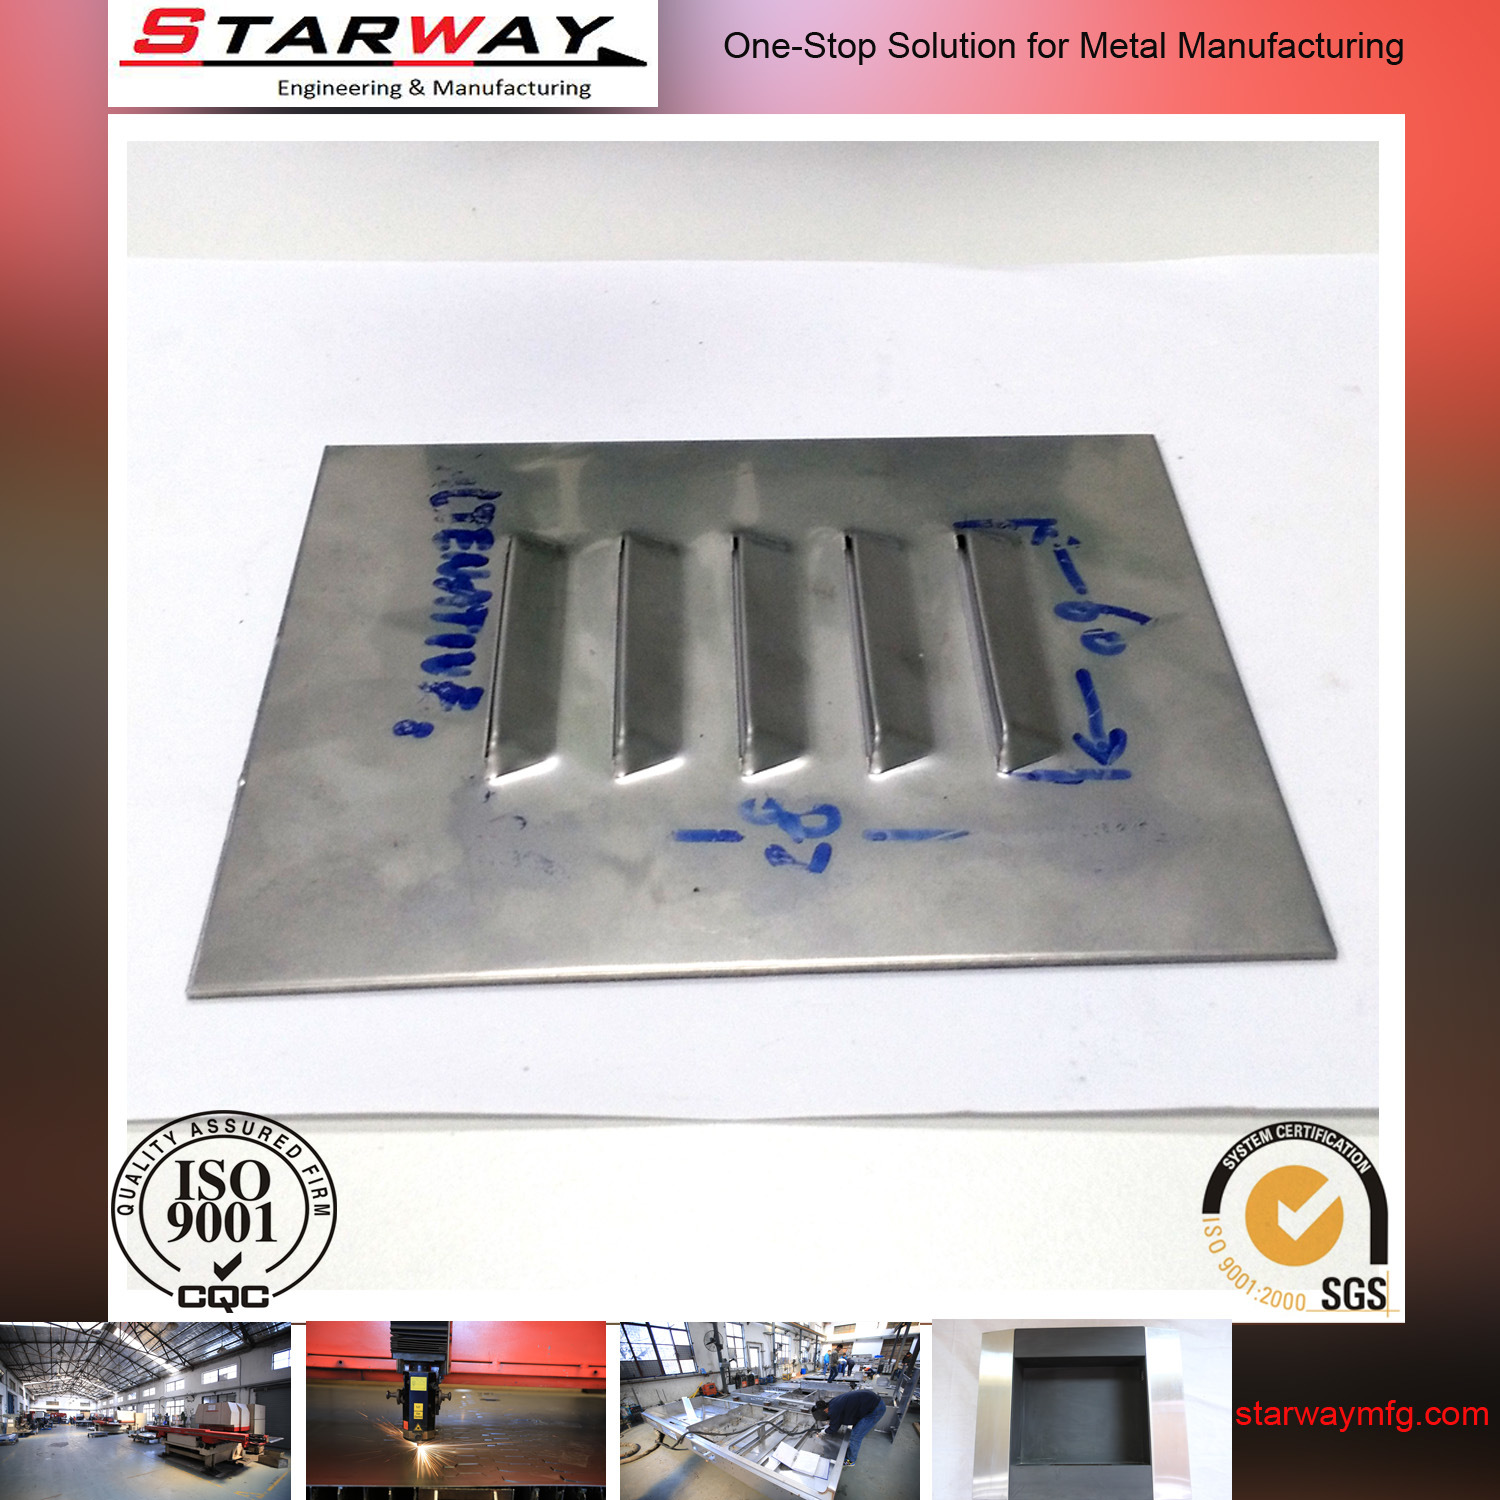 Metal Fabrication Stainless Steel Laser Cutting